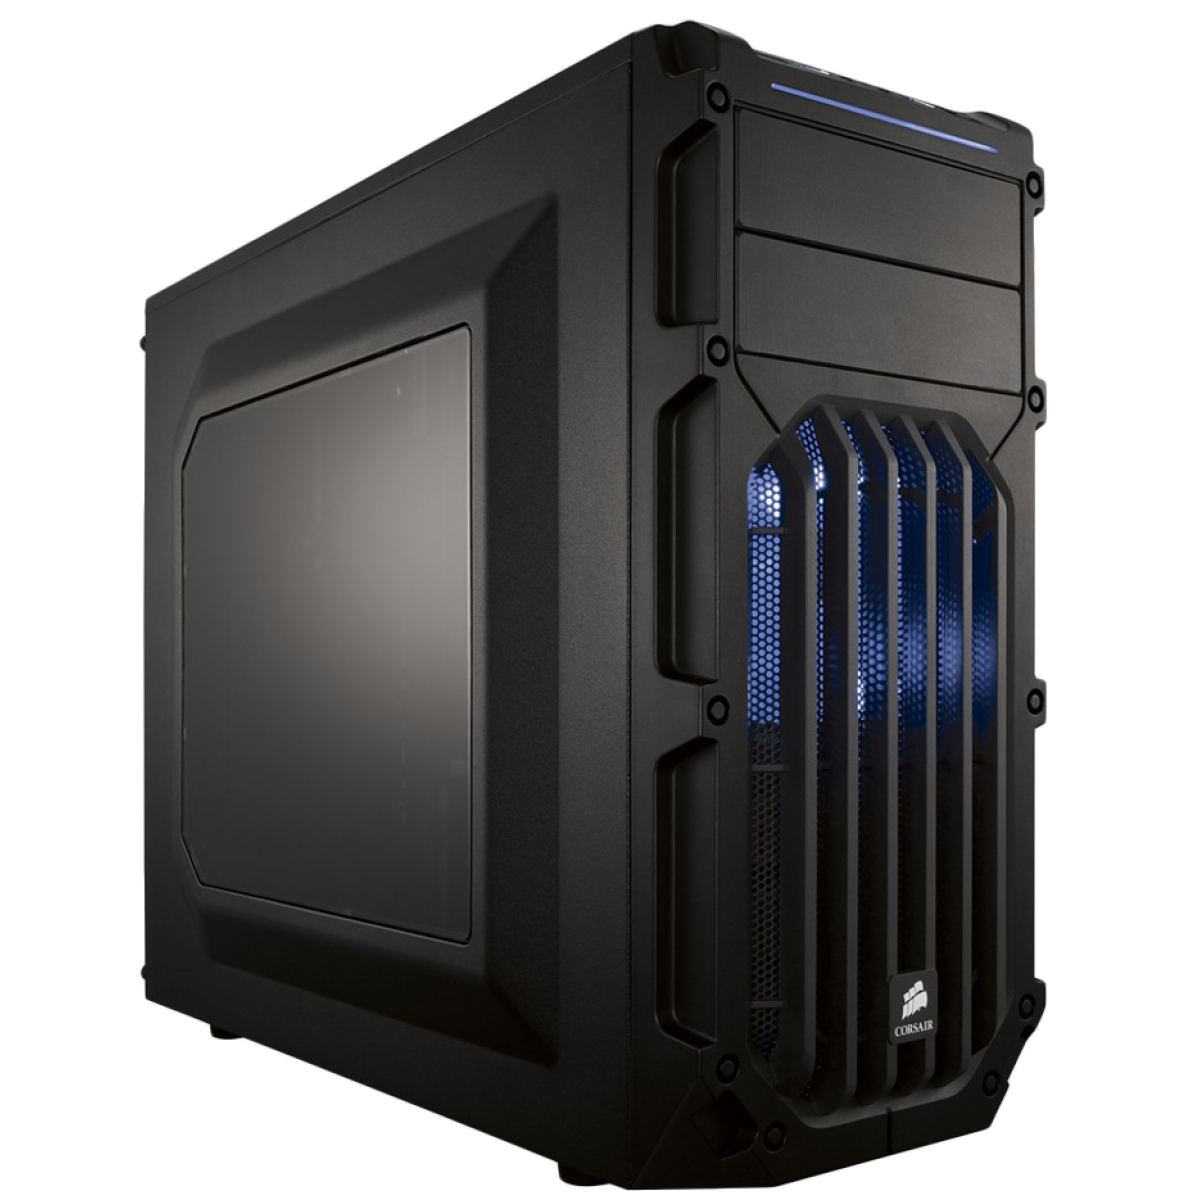 Gabinete Gamer Corsair Carbide SPEC-03, Mid Tower, Com 2 Fans, Lateral em Acrílico, Sem Fonte, CC-9011058-WW